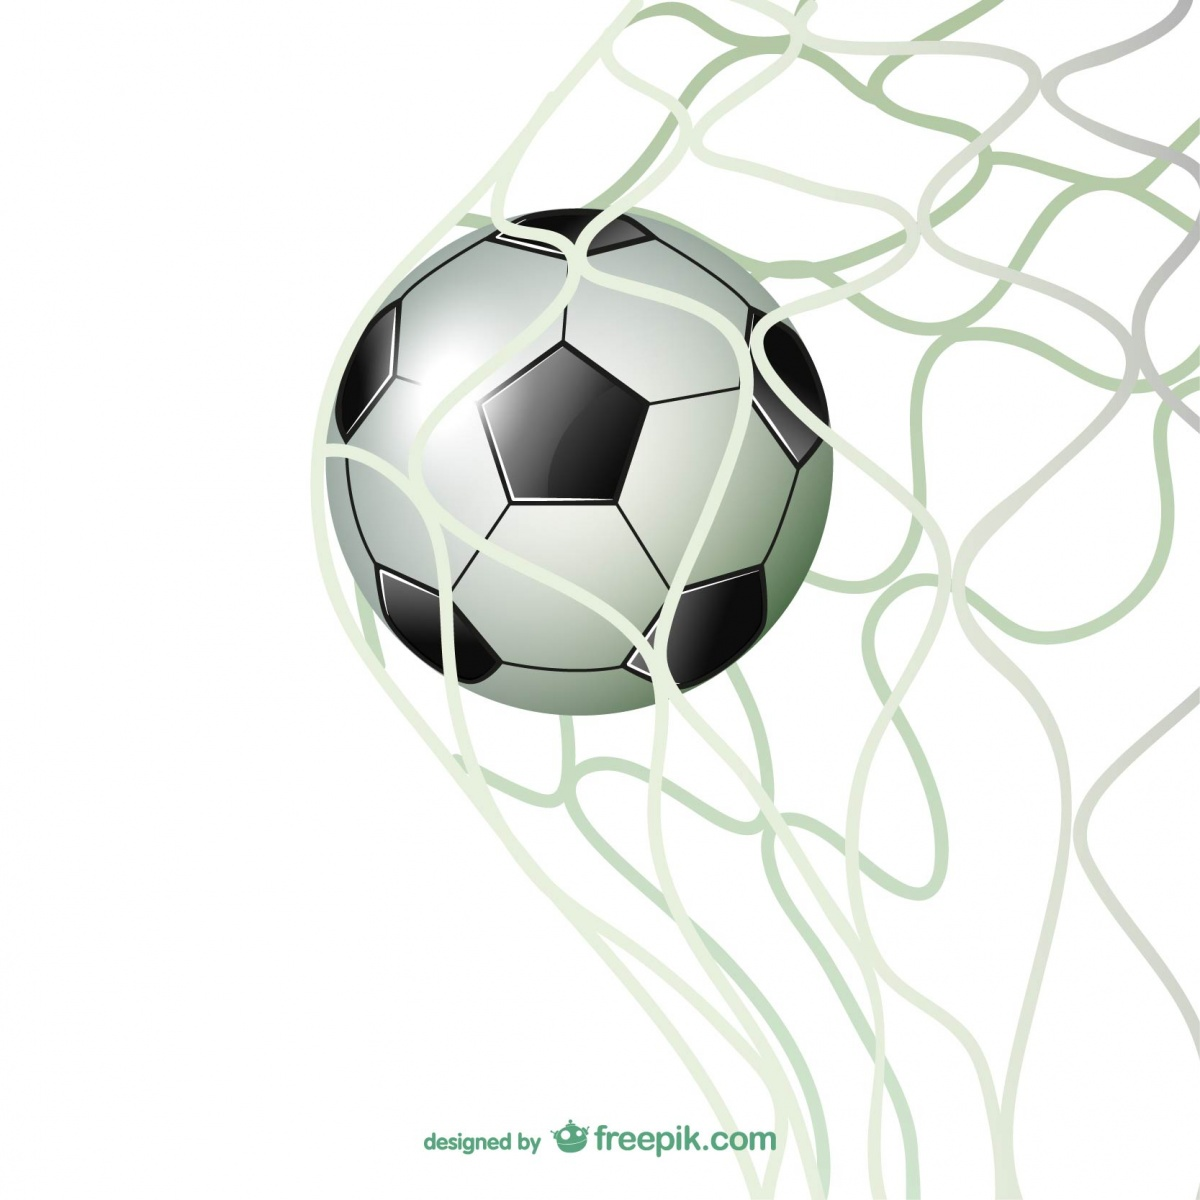 "<a href=""http://www.freepik.com/free-vector/goal--football-gate-soccer-vector_716506.htm"">Designed by Freepik</a>"